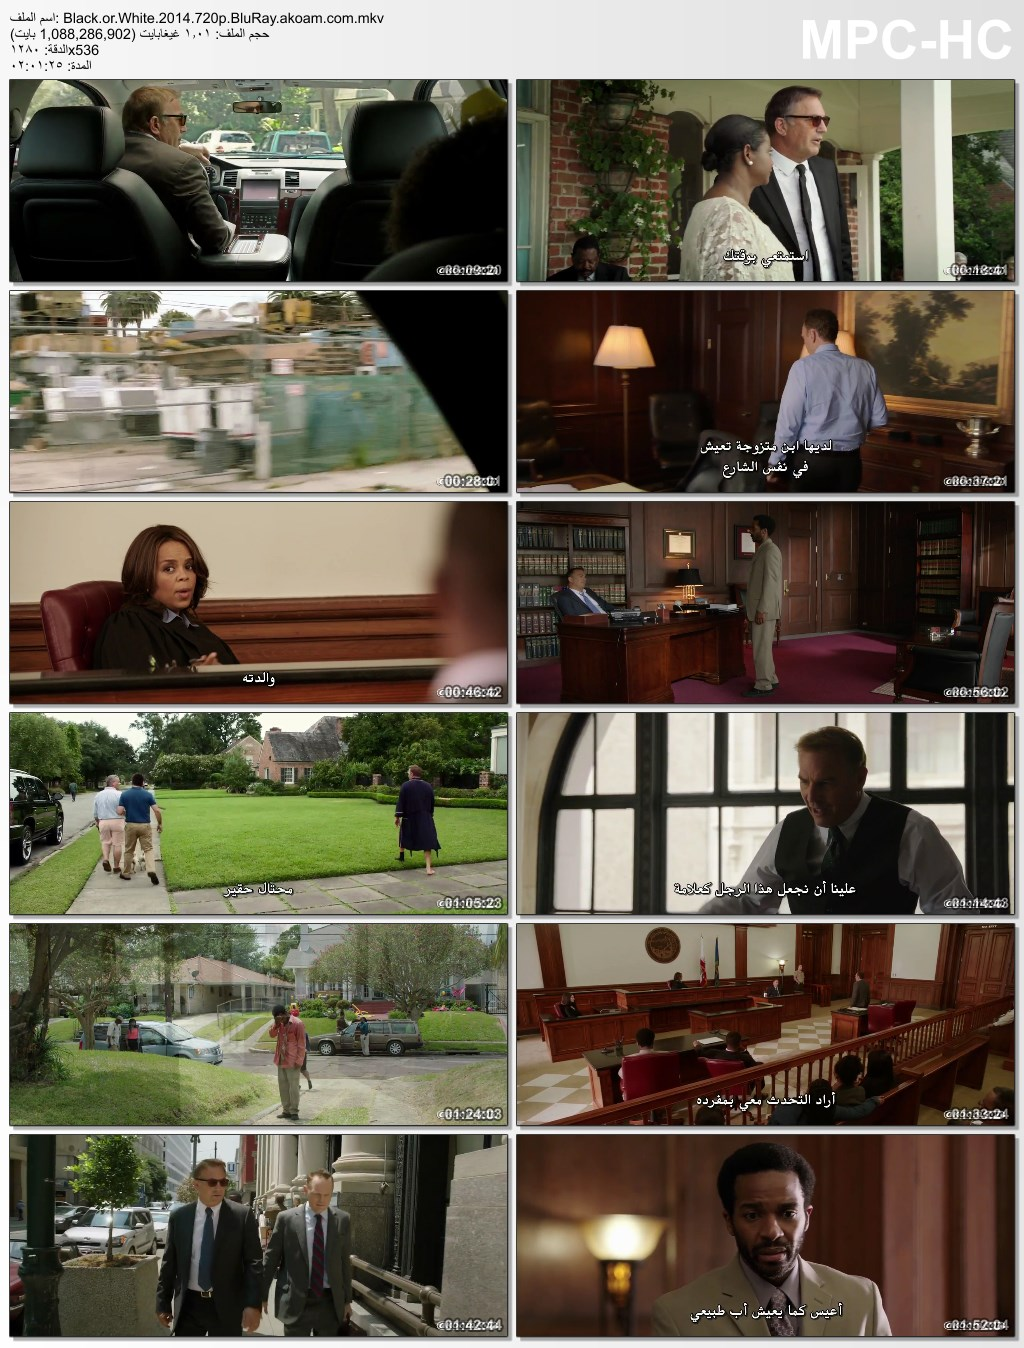 Black or White,Black or White  2014,2014,2015,الدراما,الارملة,Kevin Costner,Octavia Spencer,Gillian Jacobs,جيليان جاكوبس,كيفن كوستنر,اوكتافيا سبنسر